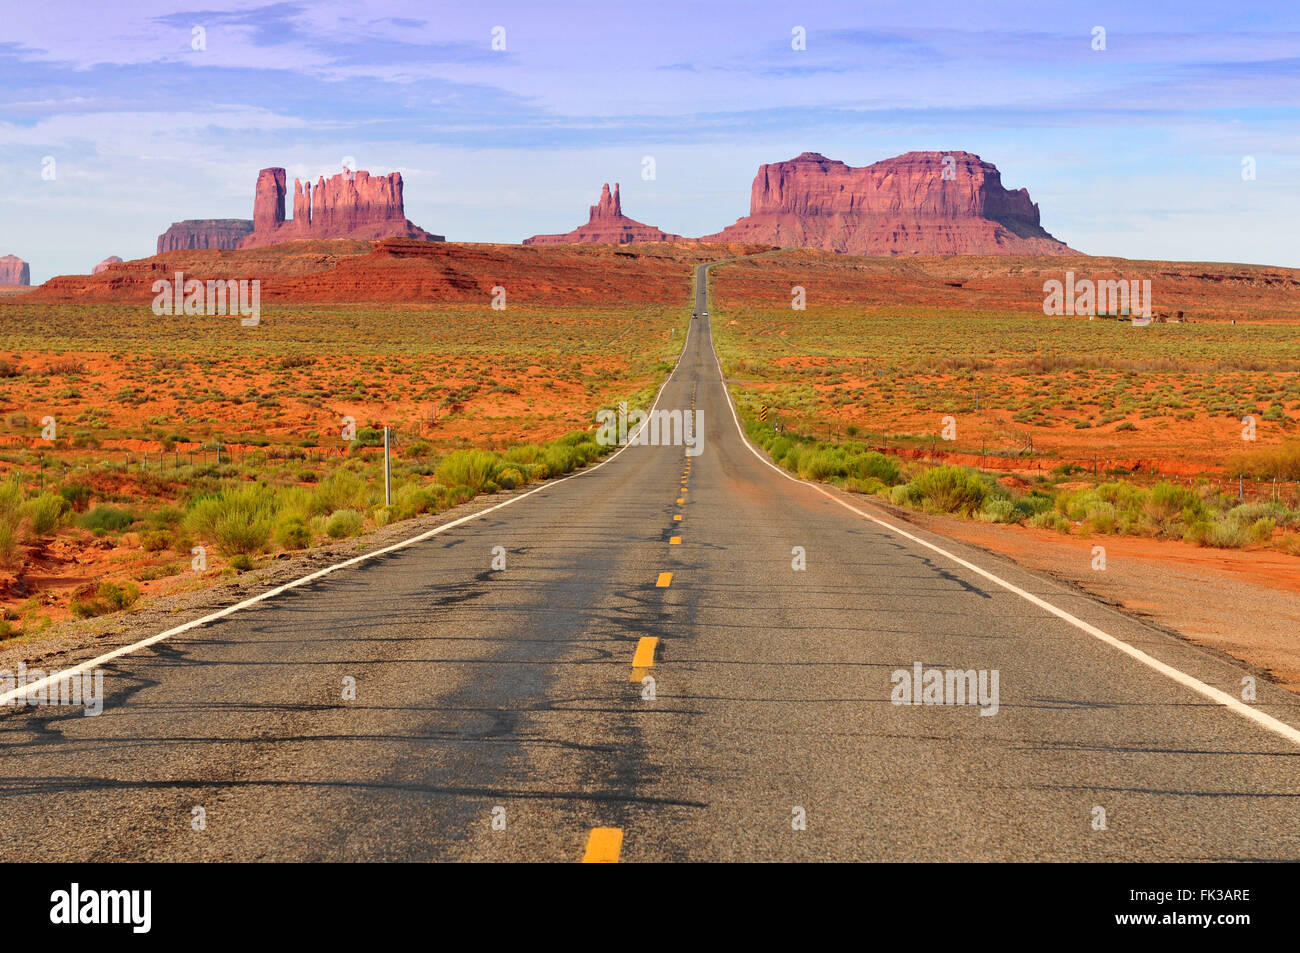 Forrest Gump Quotes Wallpaper Famous Road In Monument Valley Arizona Usa A Quot Forrest